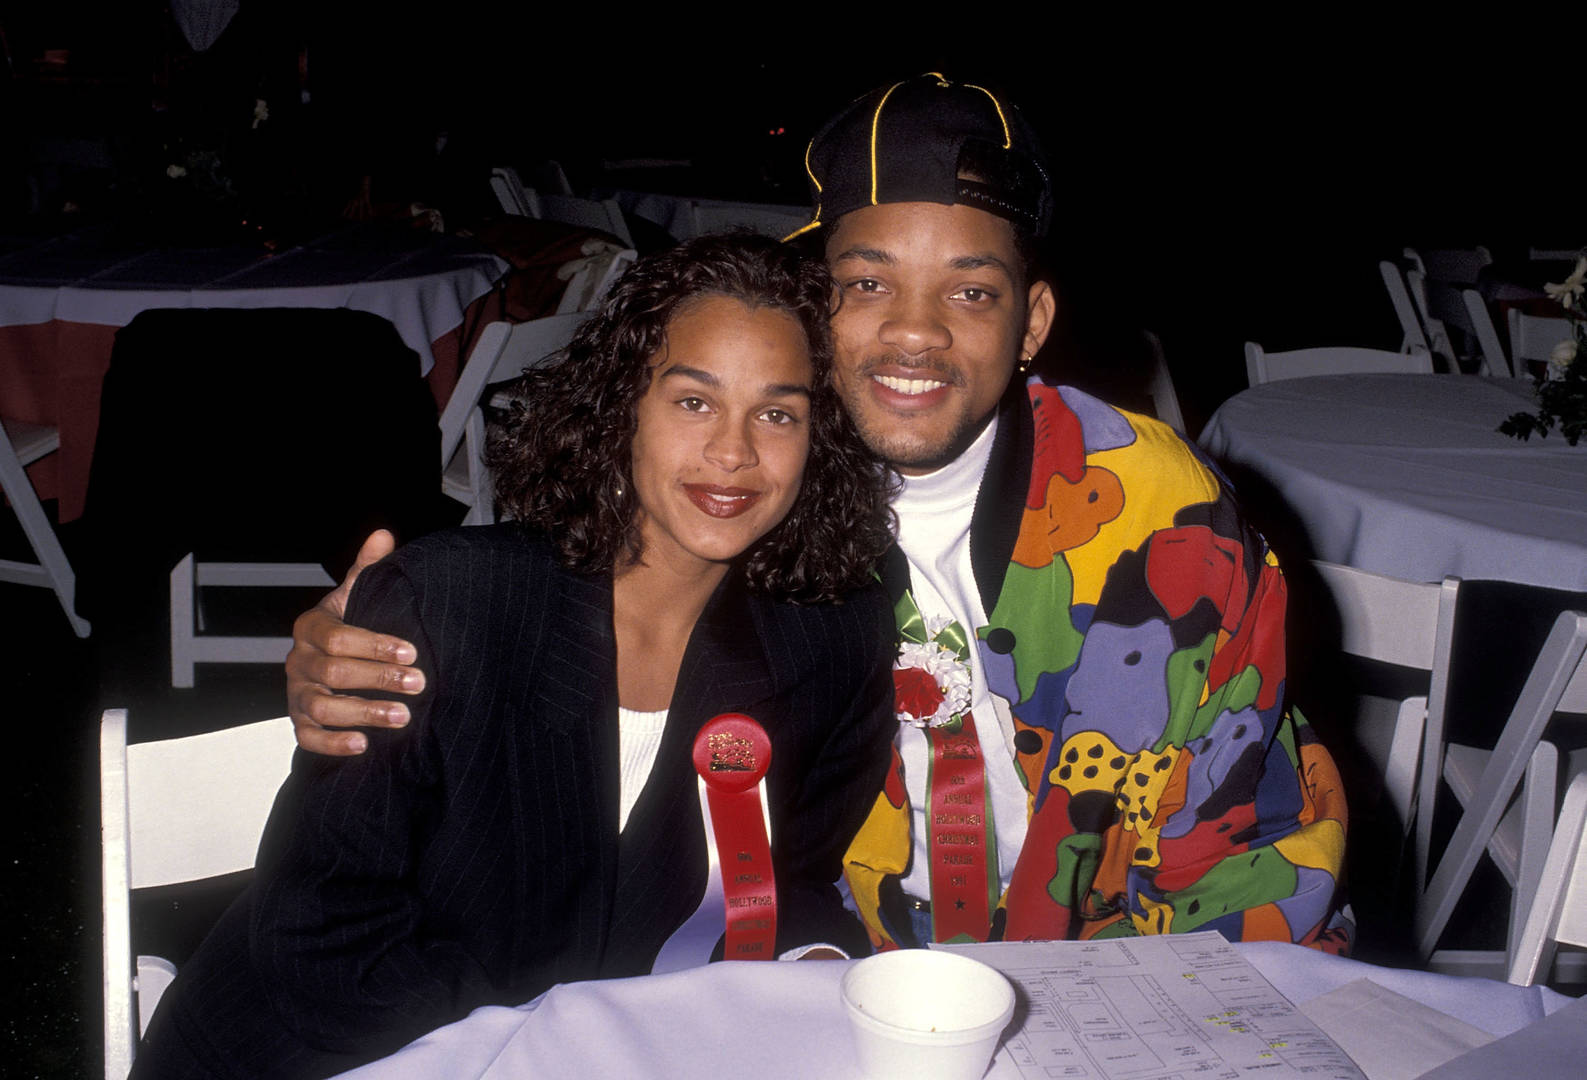 will smith sheree fletcher divorce red table talk jada pinkett smith